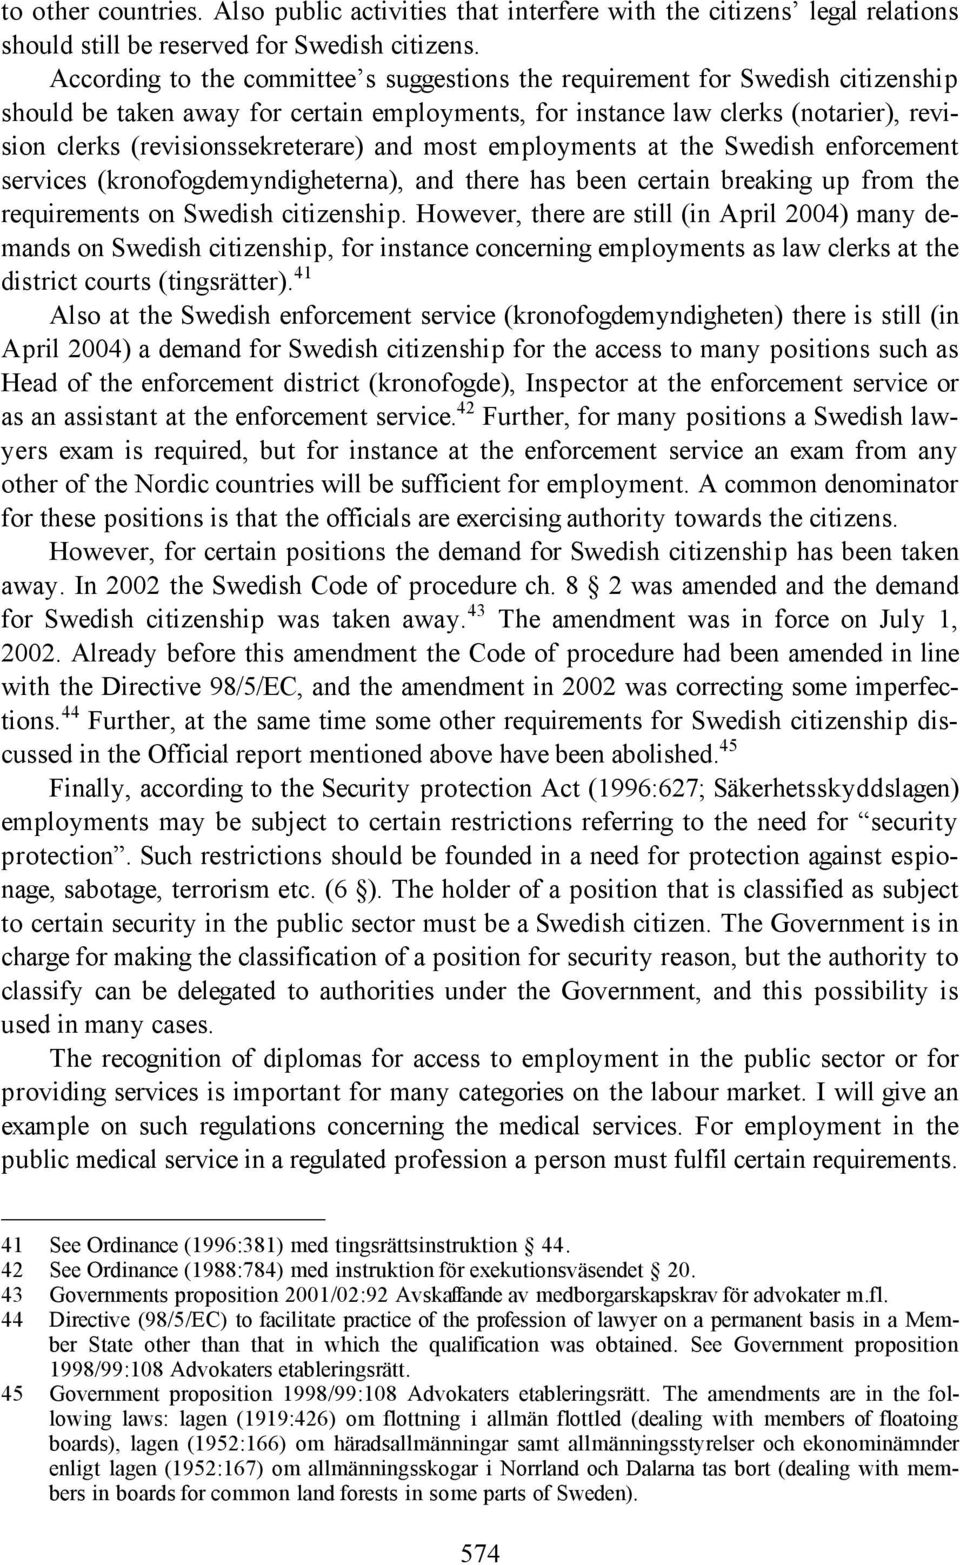 (revisionssekreterare) and most employments at the Swedish enforcement services (kronofogdemyndigheterna), and there has been certain breaking up from the requirements on Swedish citizenship.